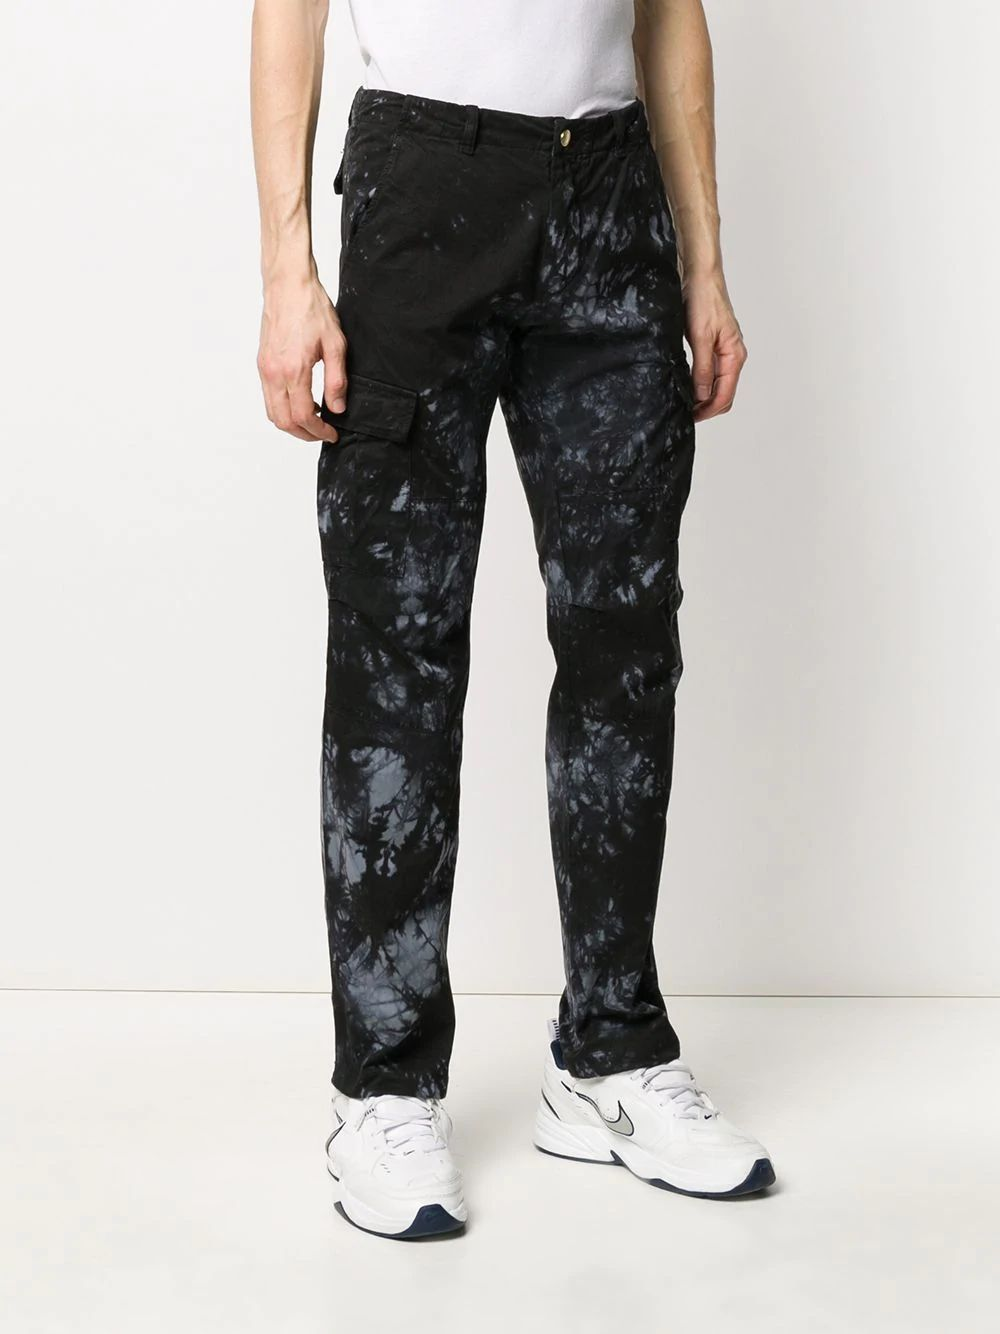 Black Midnight Tie-Dye Cargo Pants